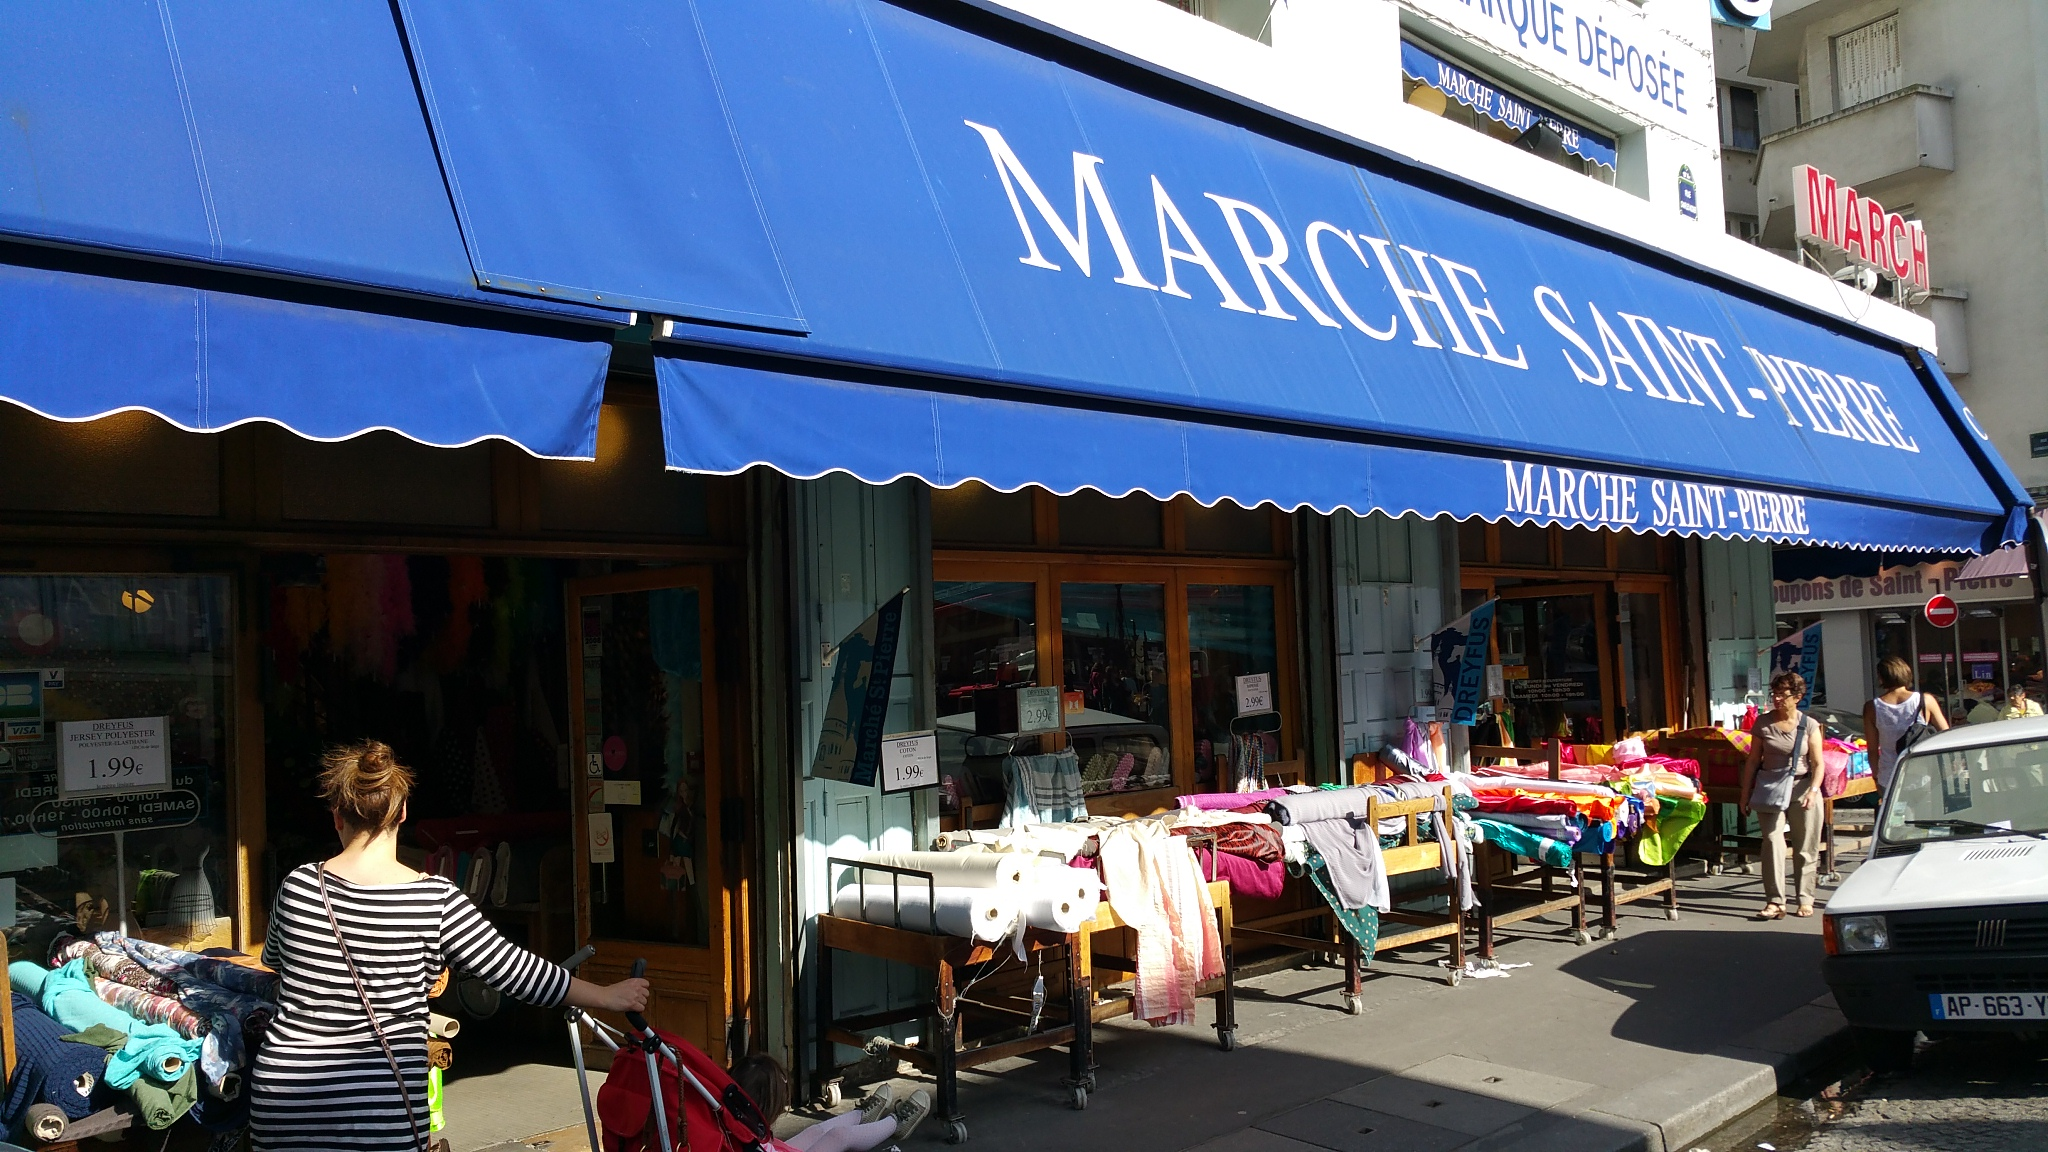 Things to do in montmartre paris my parisian life - Marche saint pierre paris ...